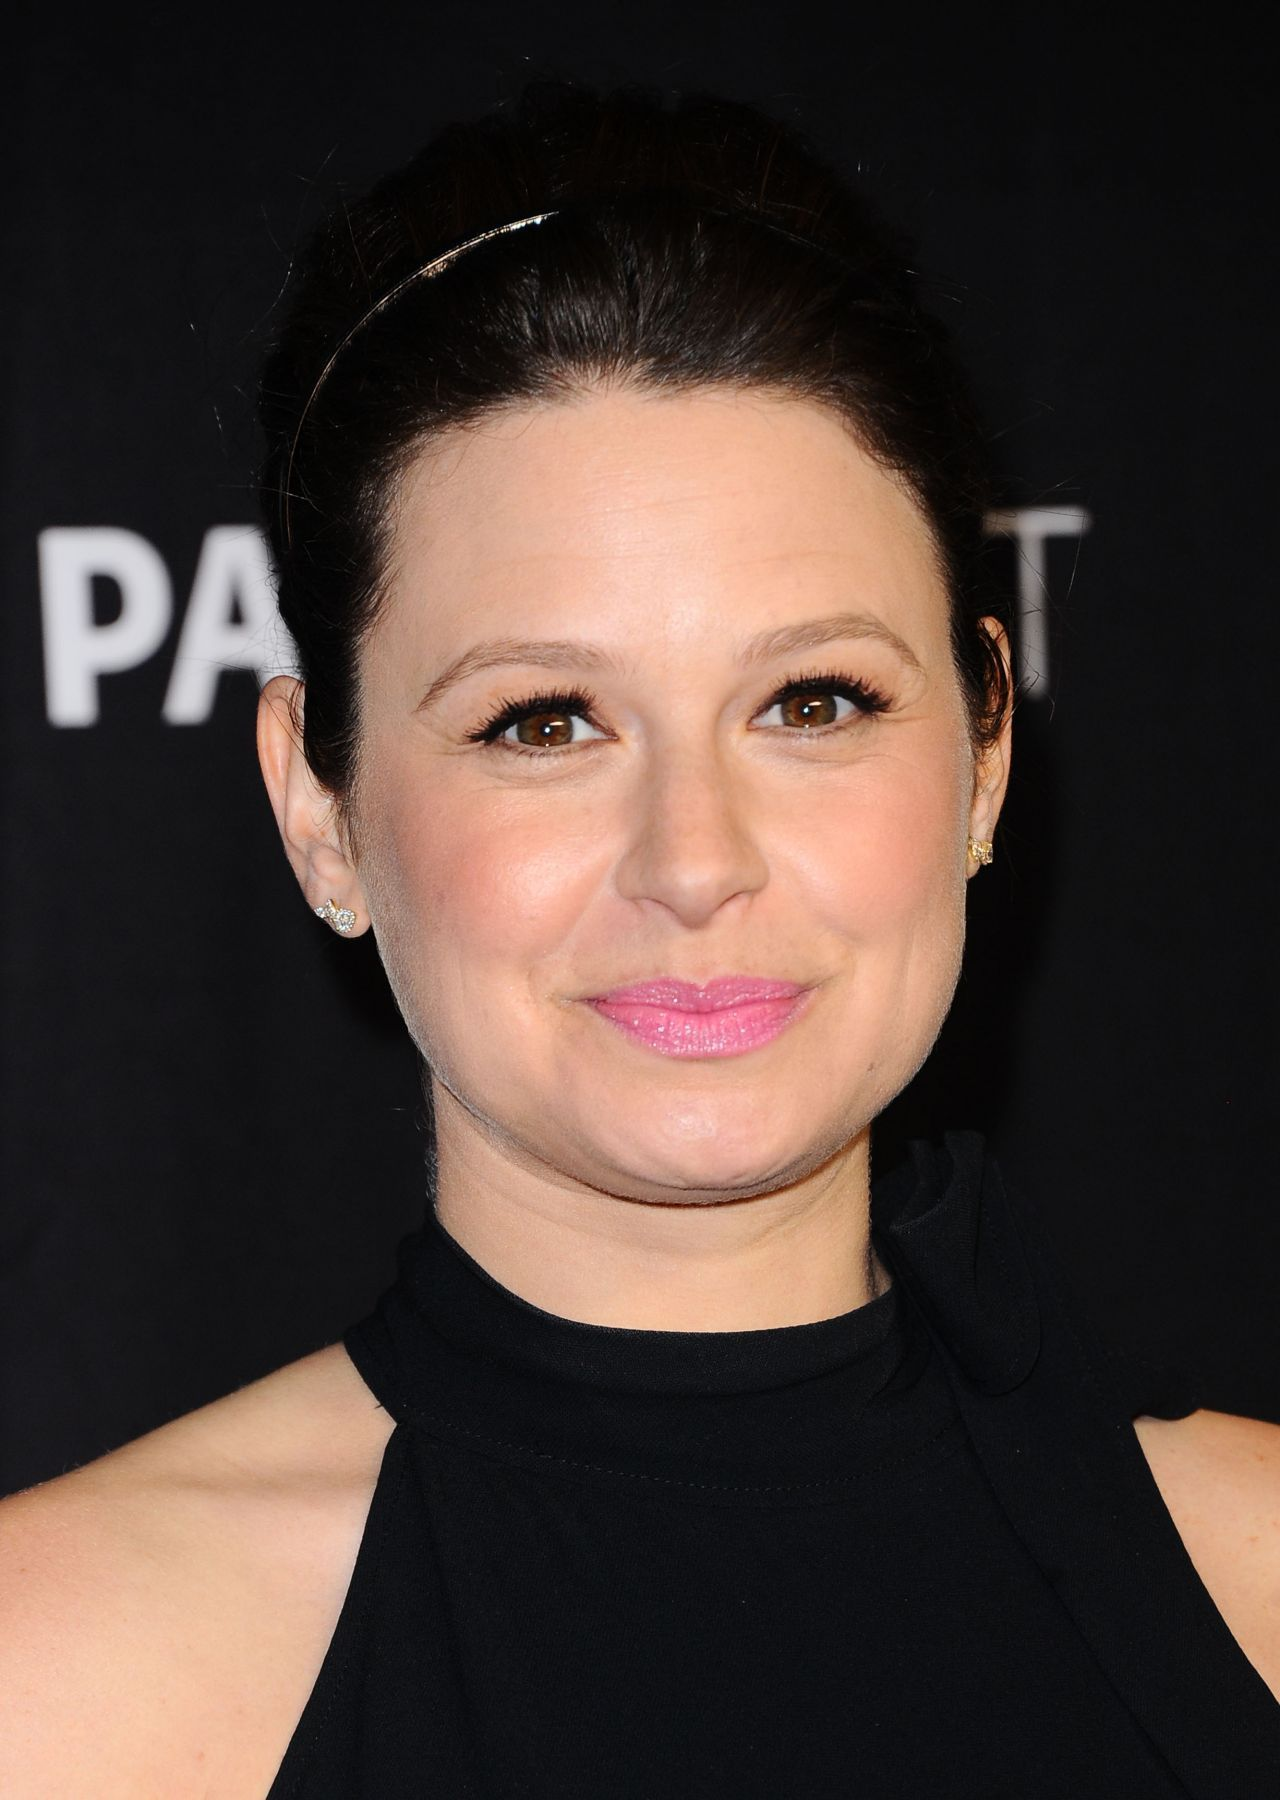 Katie lowes long wavy casual hairstyle thehairstyler com - Bellamy Young Bellamyyoung Scandal Screening And Panel At Paleyfest In Hollywood 26 03 2017 Celebstills Bellamy Young Int Celebrities Pinterest